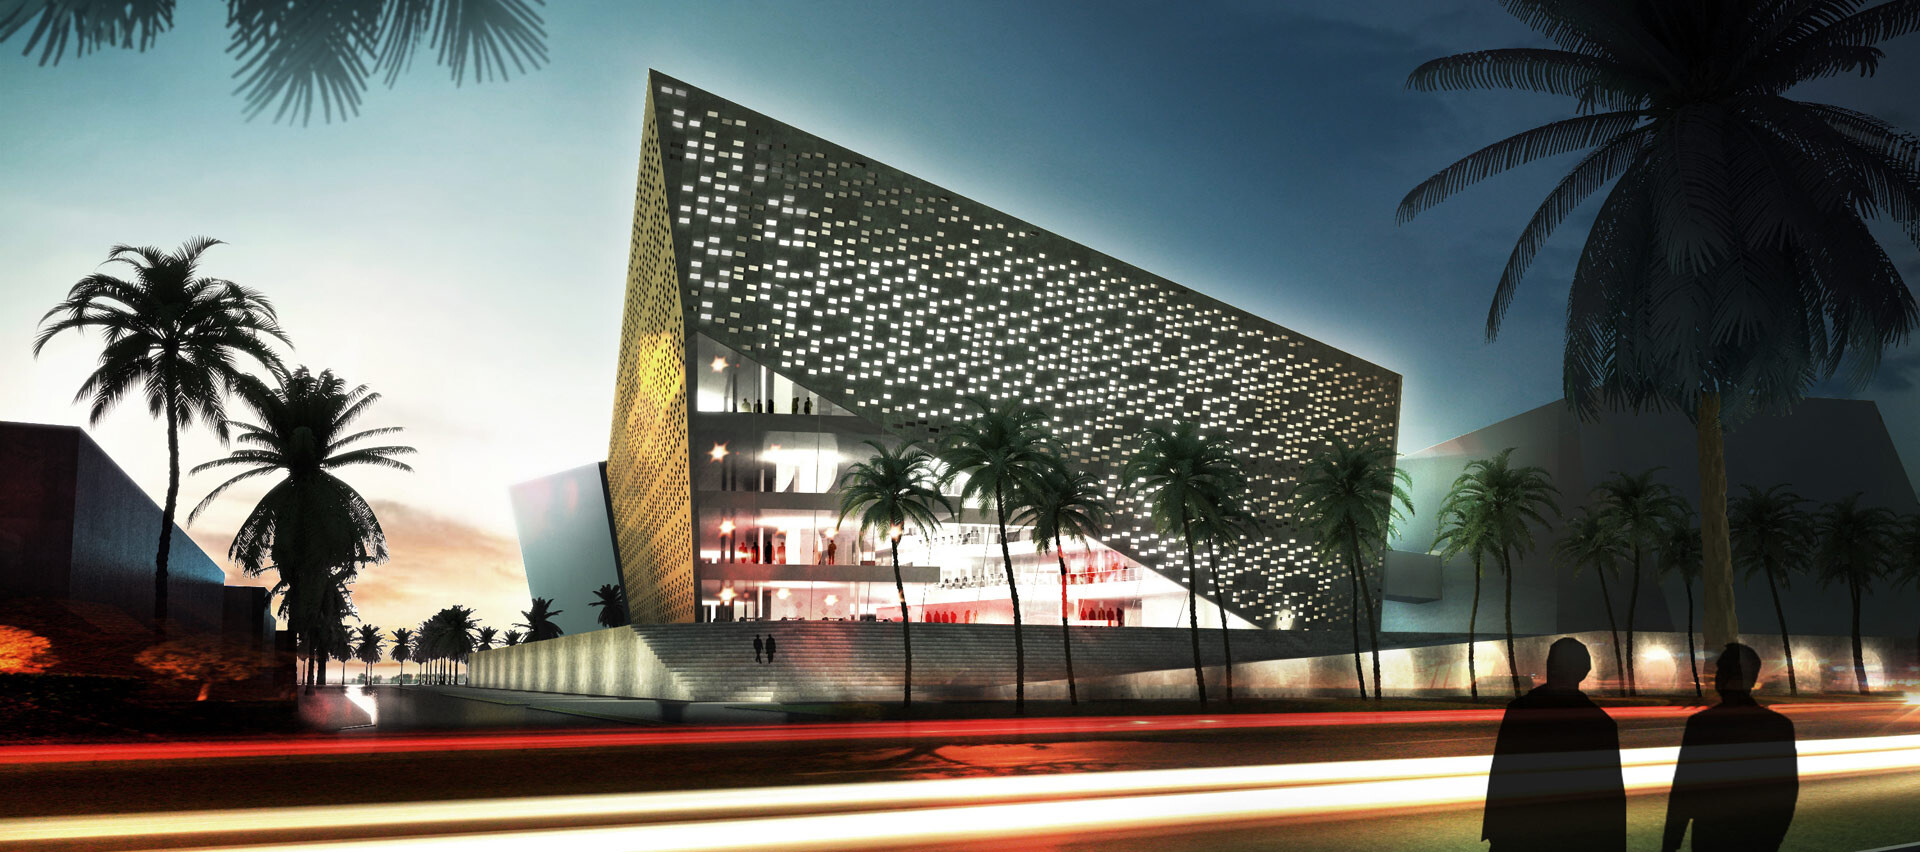 The Prince Naif Centre for Health Science Research